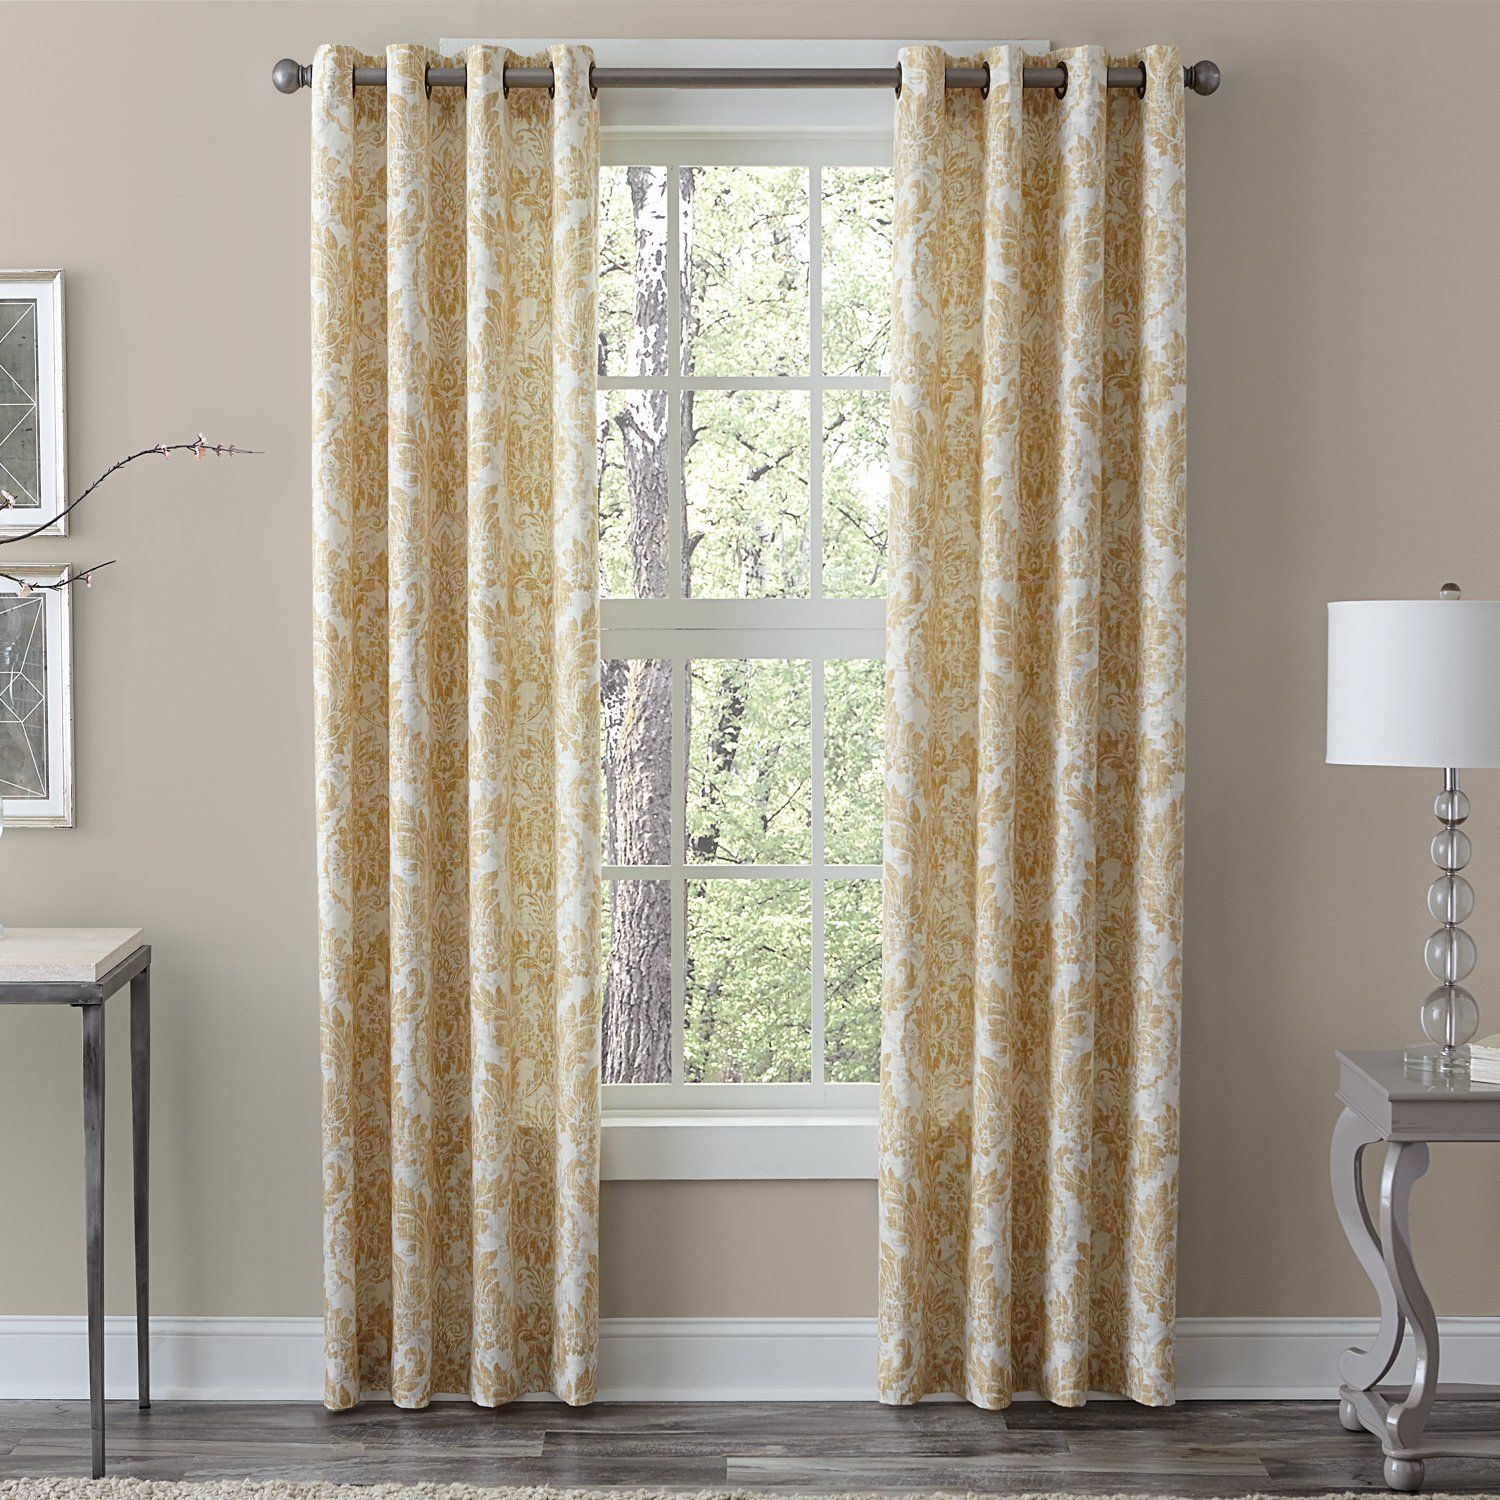 Veratex Linen Medallion Single Window Curtain Panel 120 In Grey As Is Item Panel Curtains Drapes Curtains